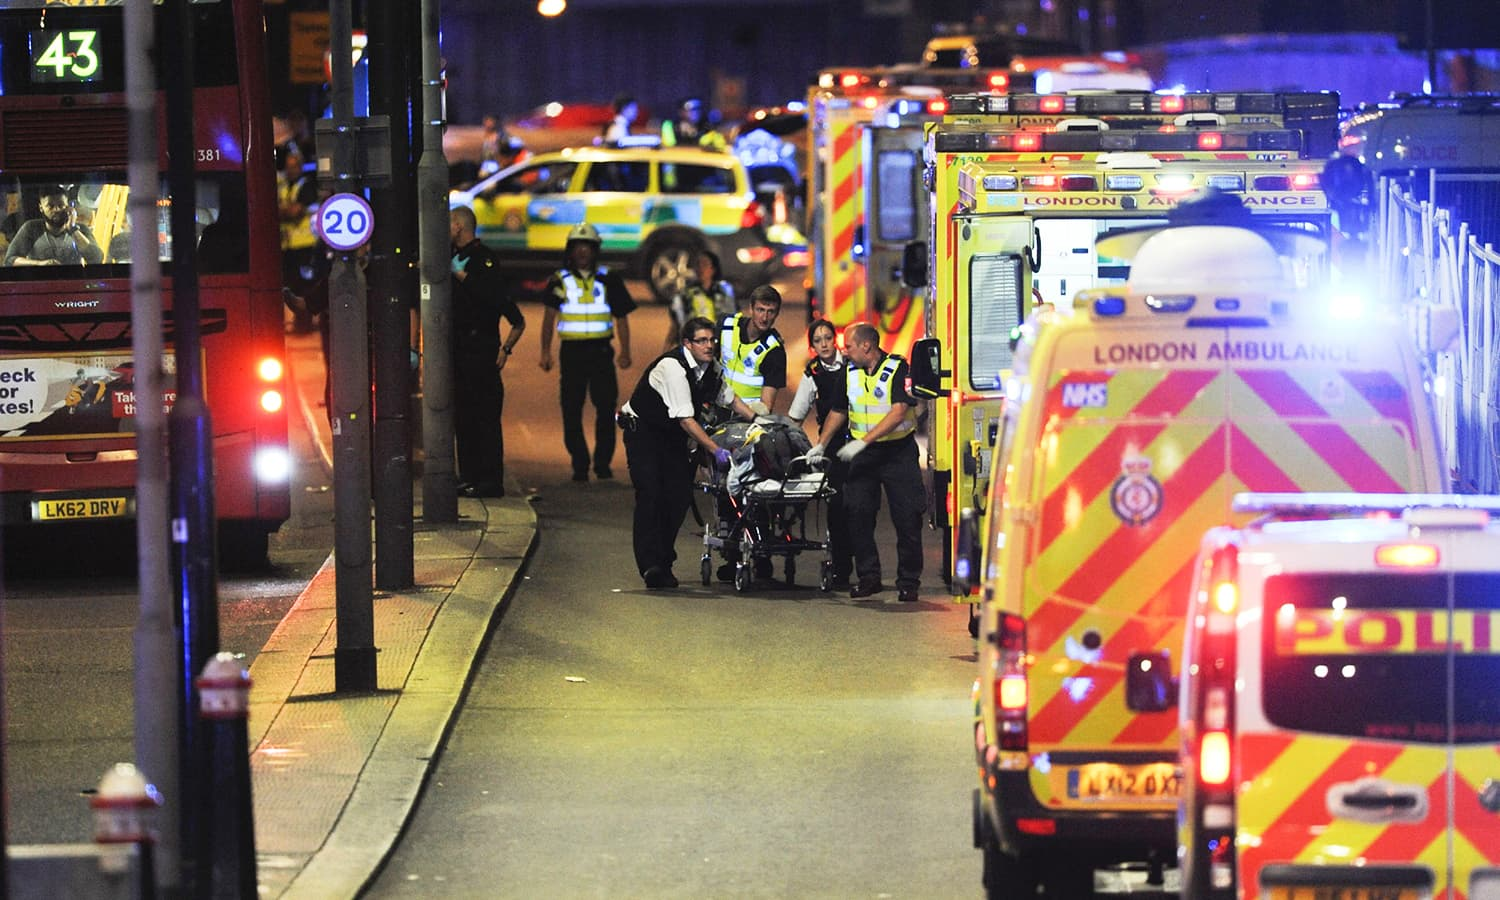 Police officers and members of the emergency services attend to a person injured in an apparent terror attack on London Bridge.─AFP